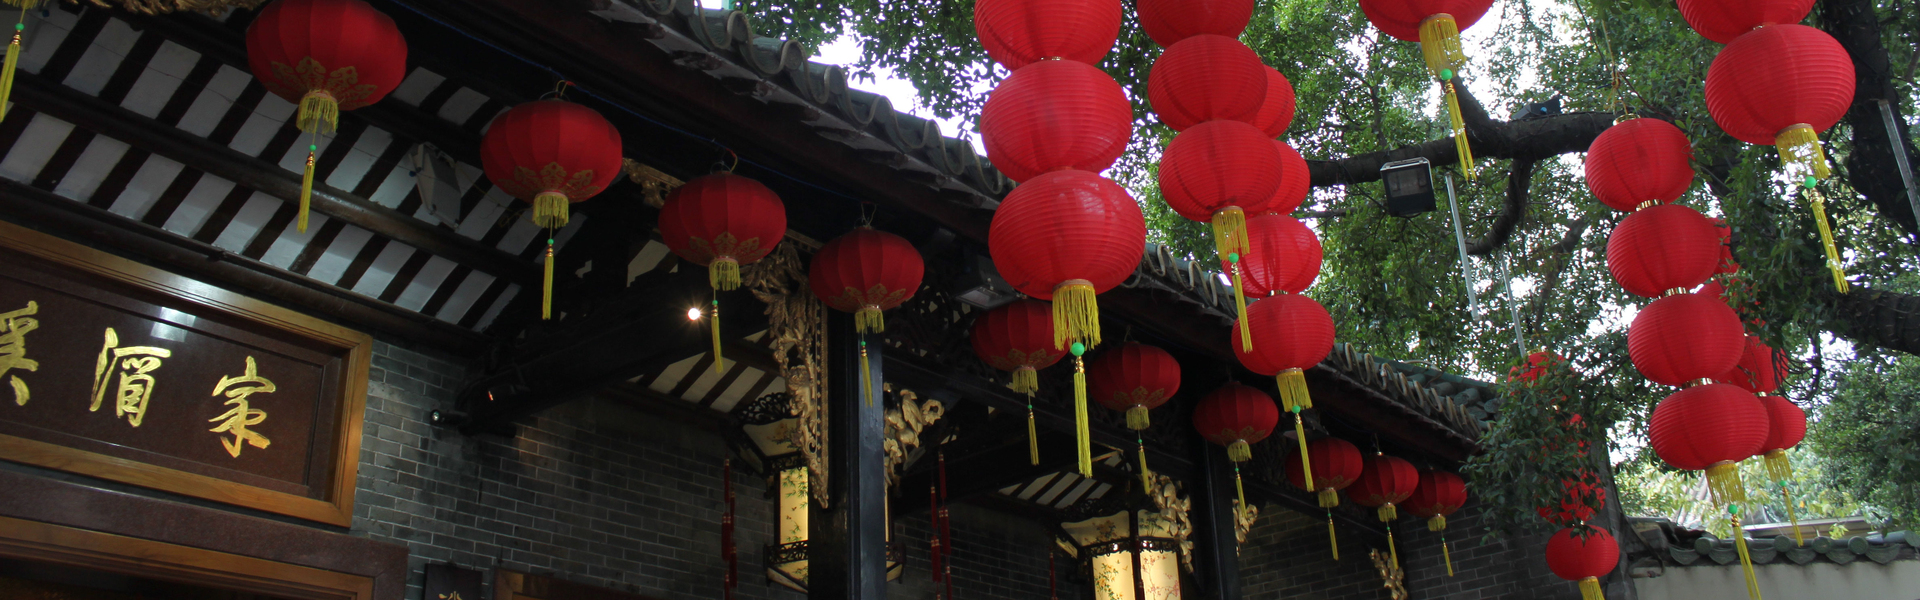 Paper Lanterns in China